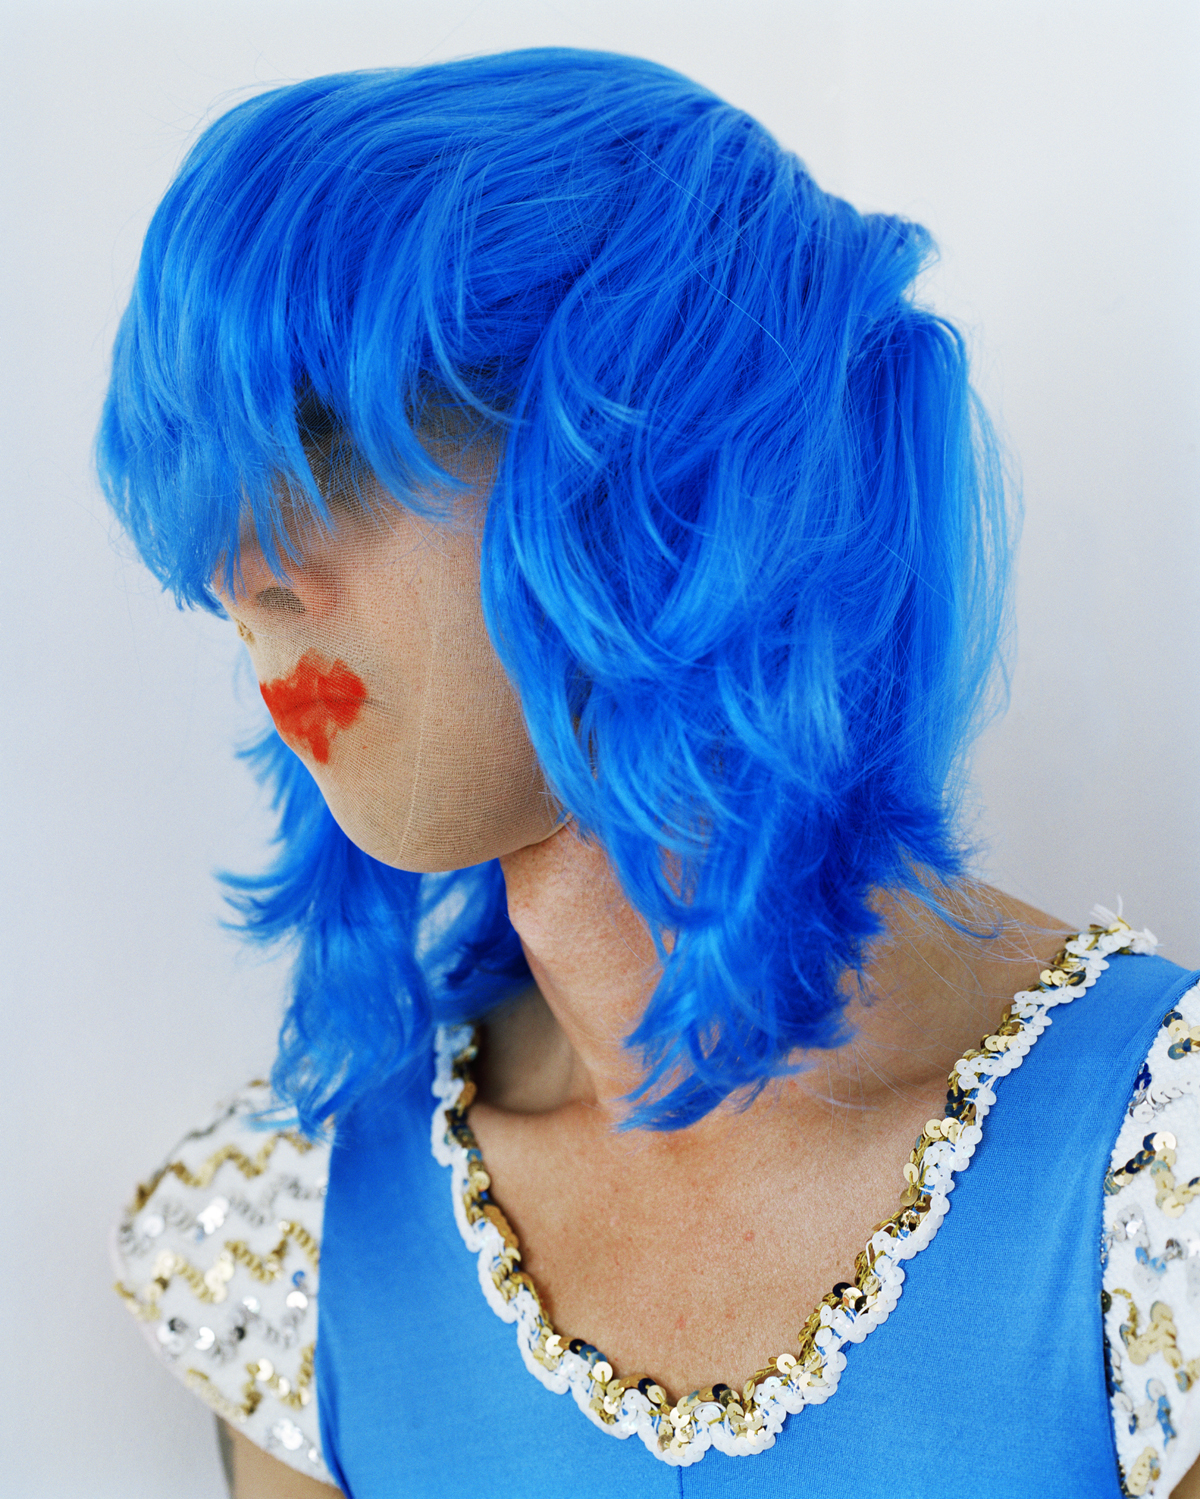 Polly Borland, Untitled (Nick Cave in blue wig)